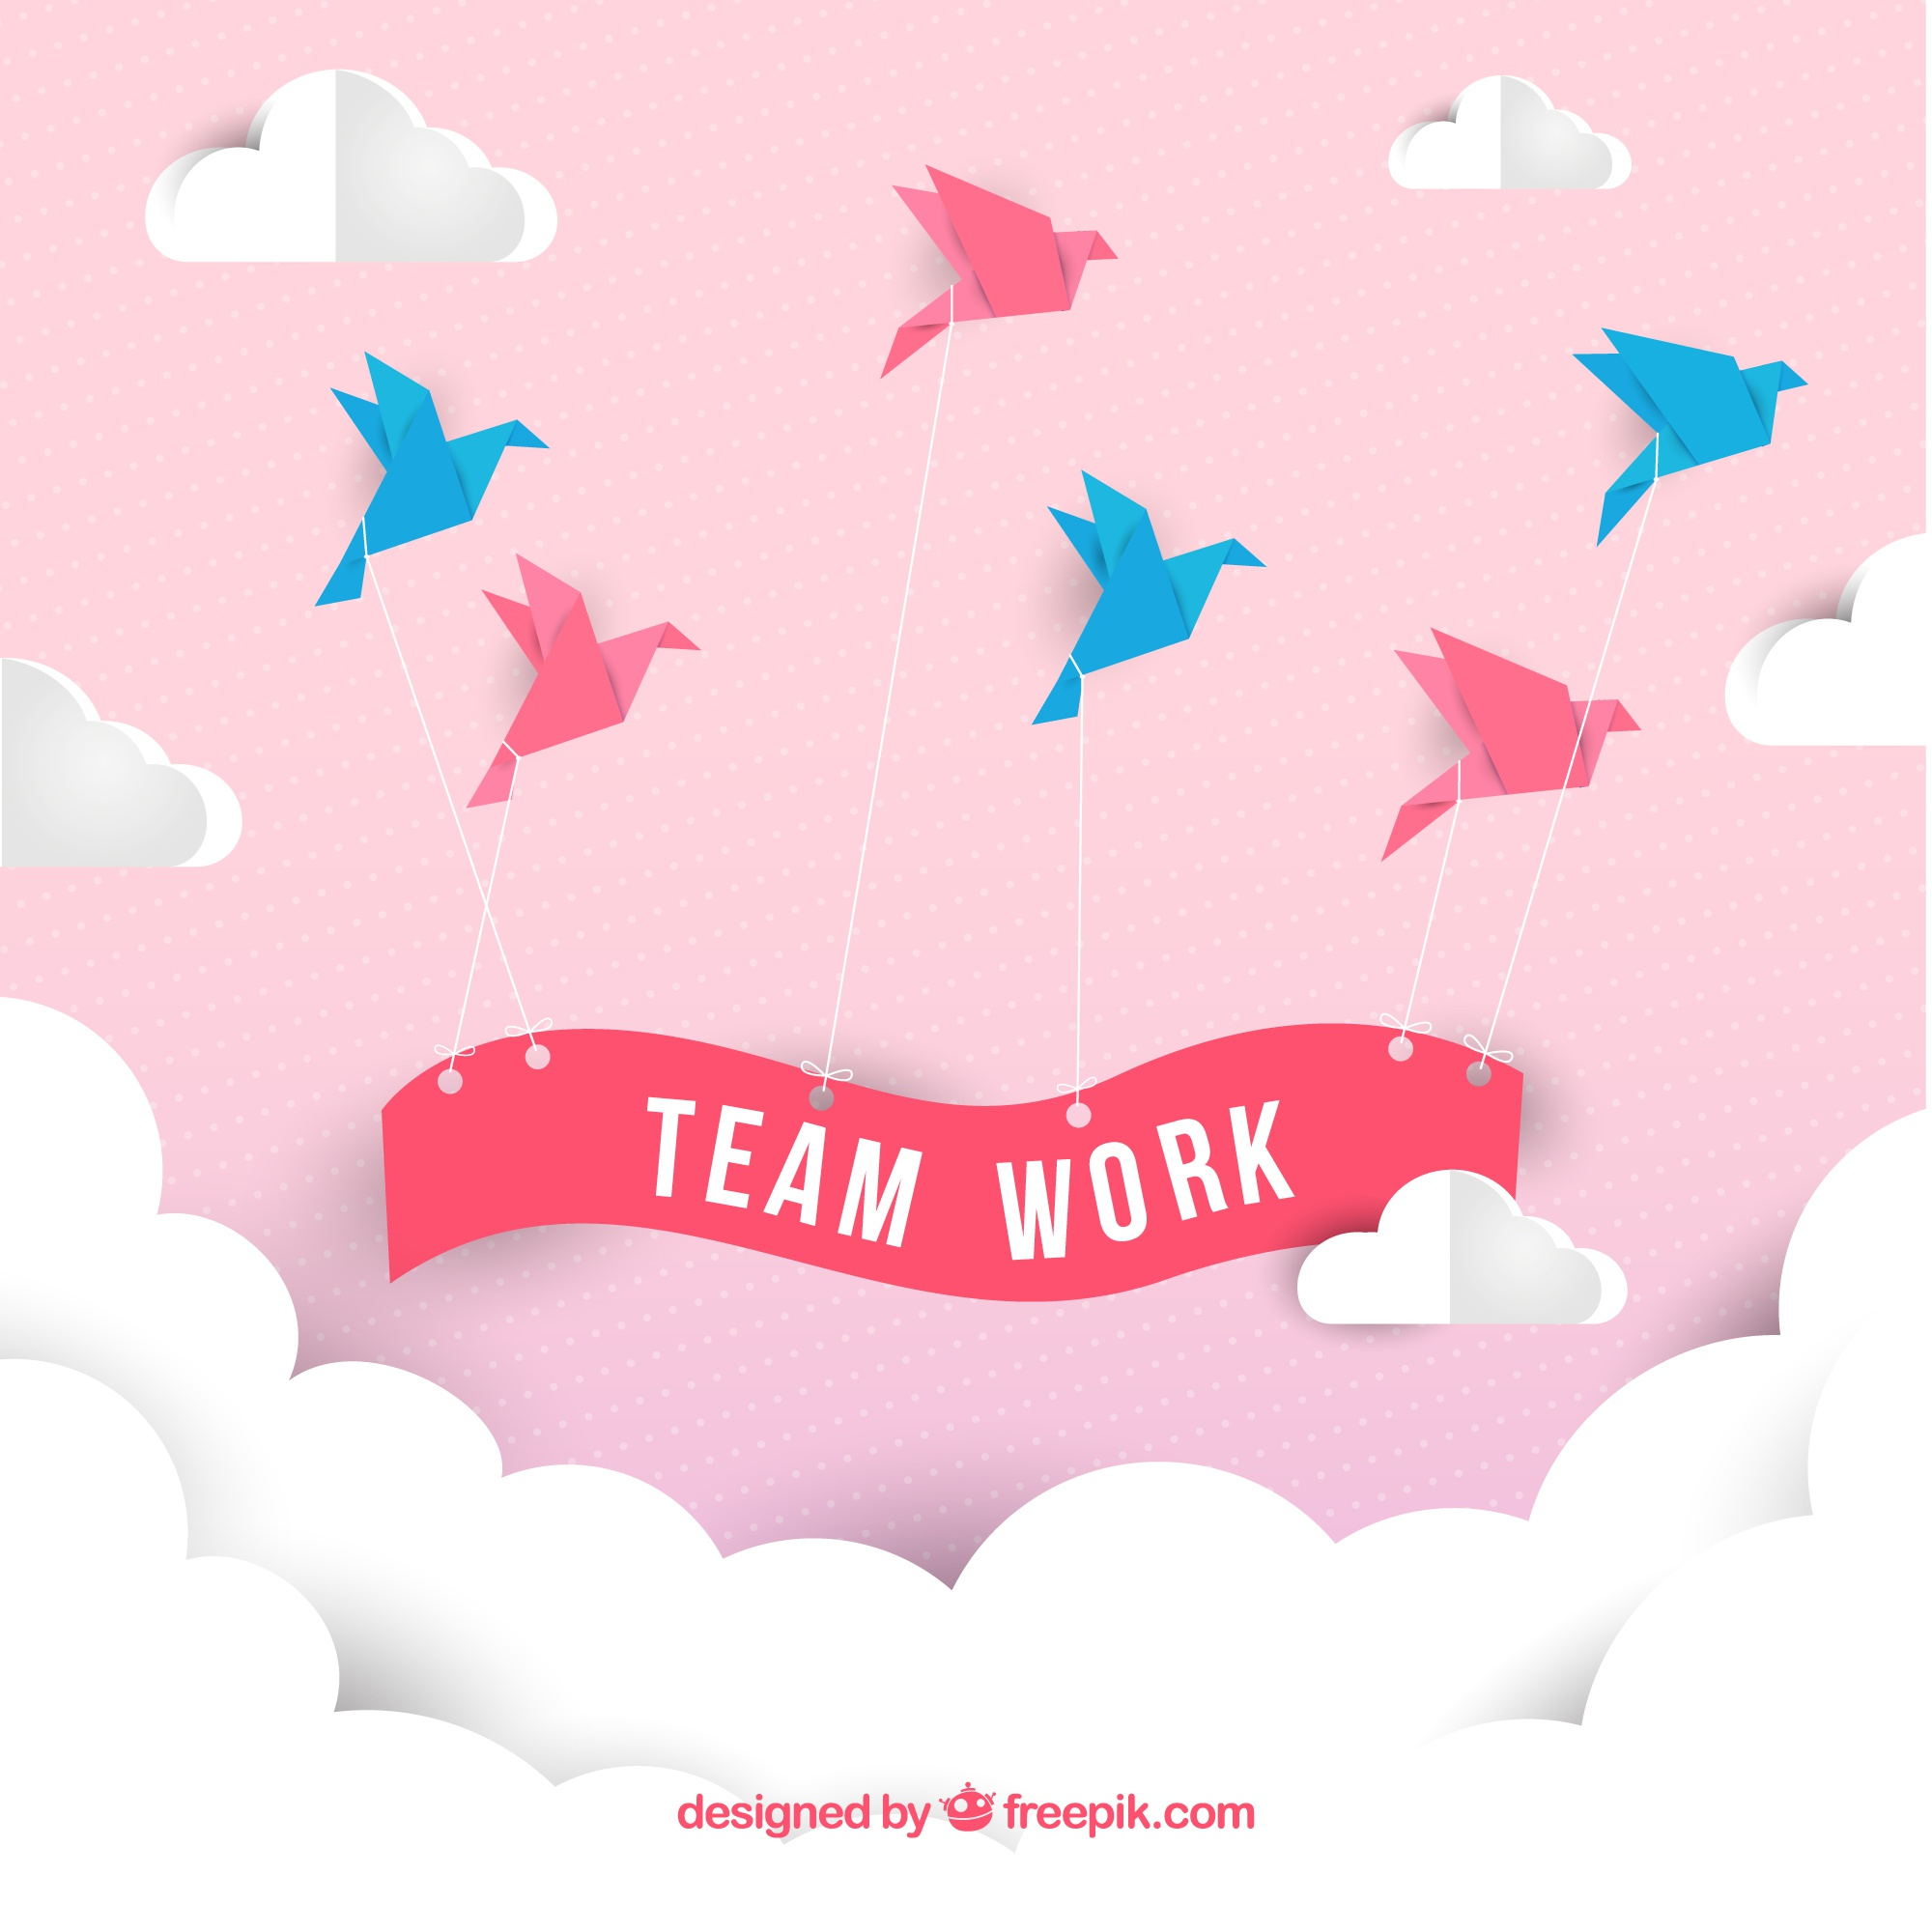 Teamwork concept with origami style